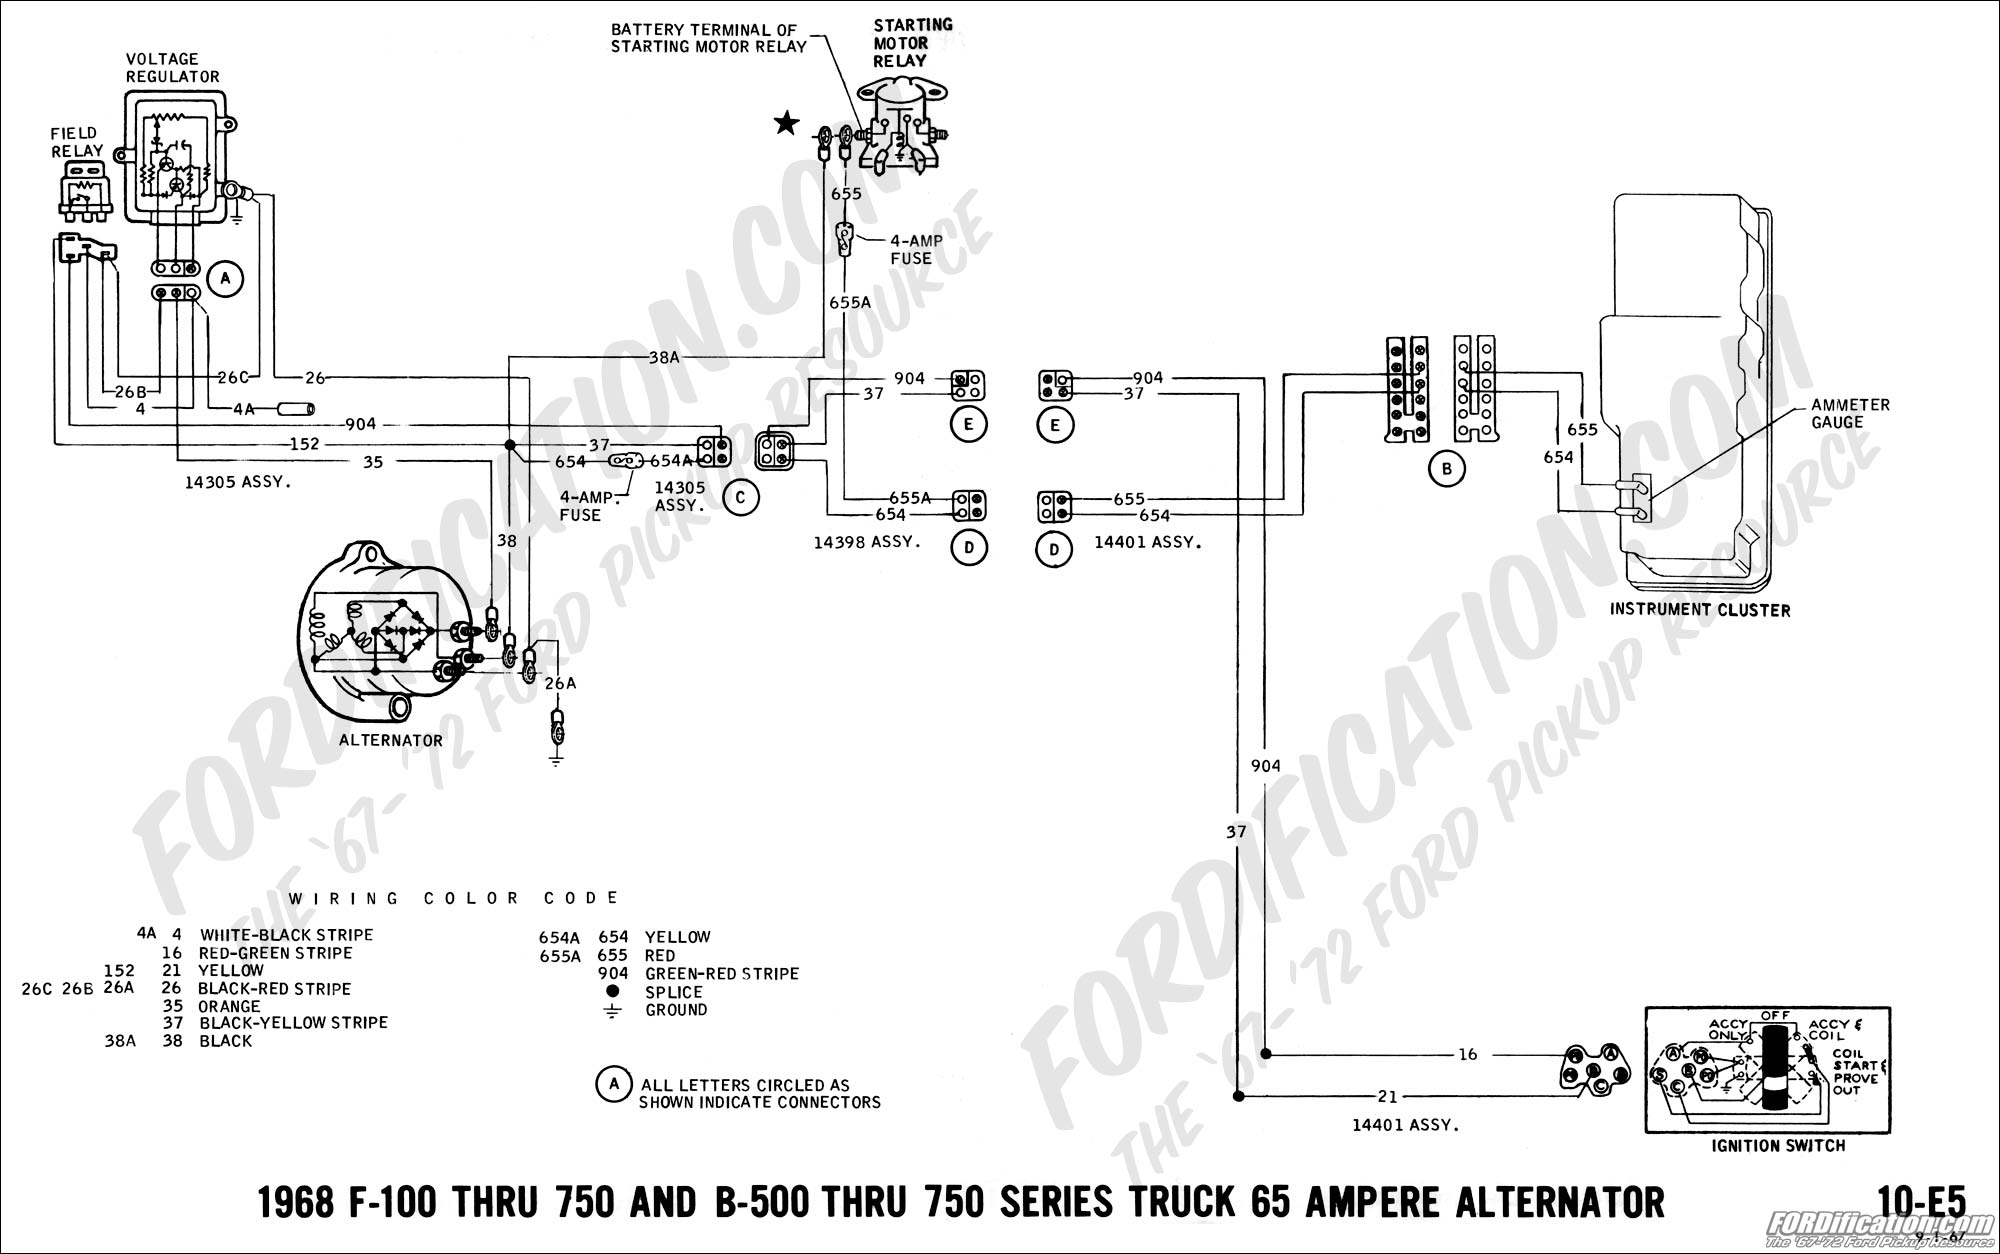 1977 Camaro Fuel Pump Wiring Block Diagram Explanation 2002 Ford Truck Technical Drawings And Schematics Section H Diagrams 1997 Relay 97